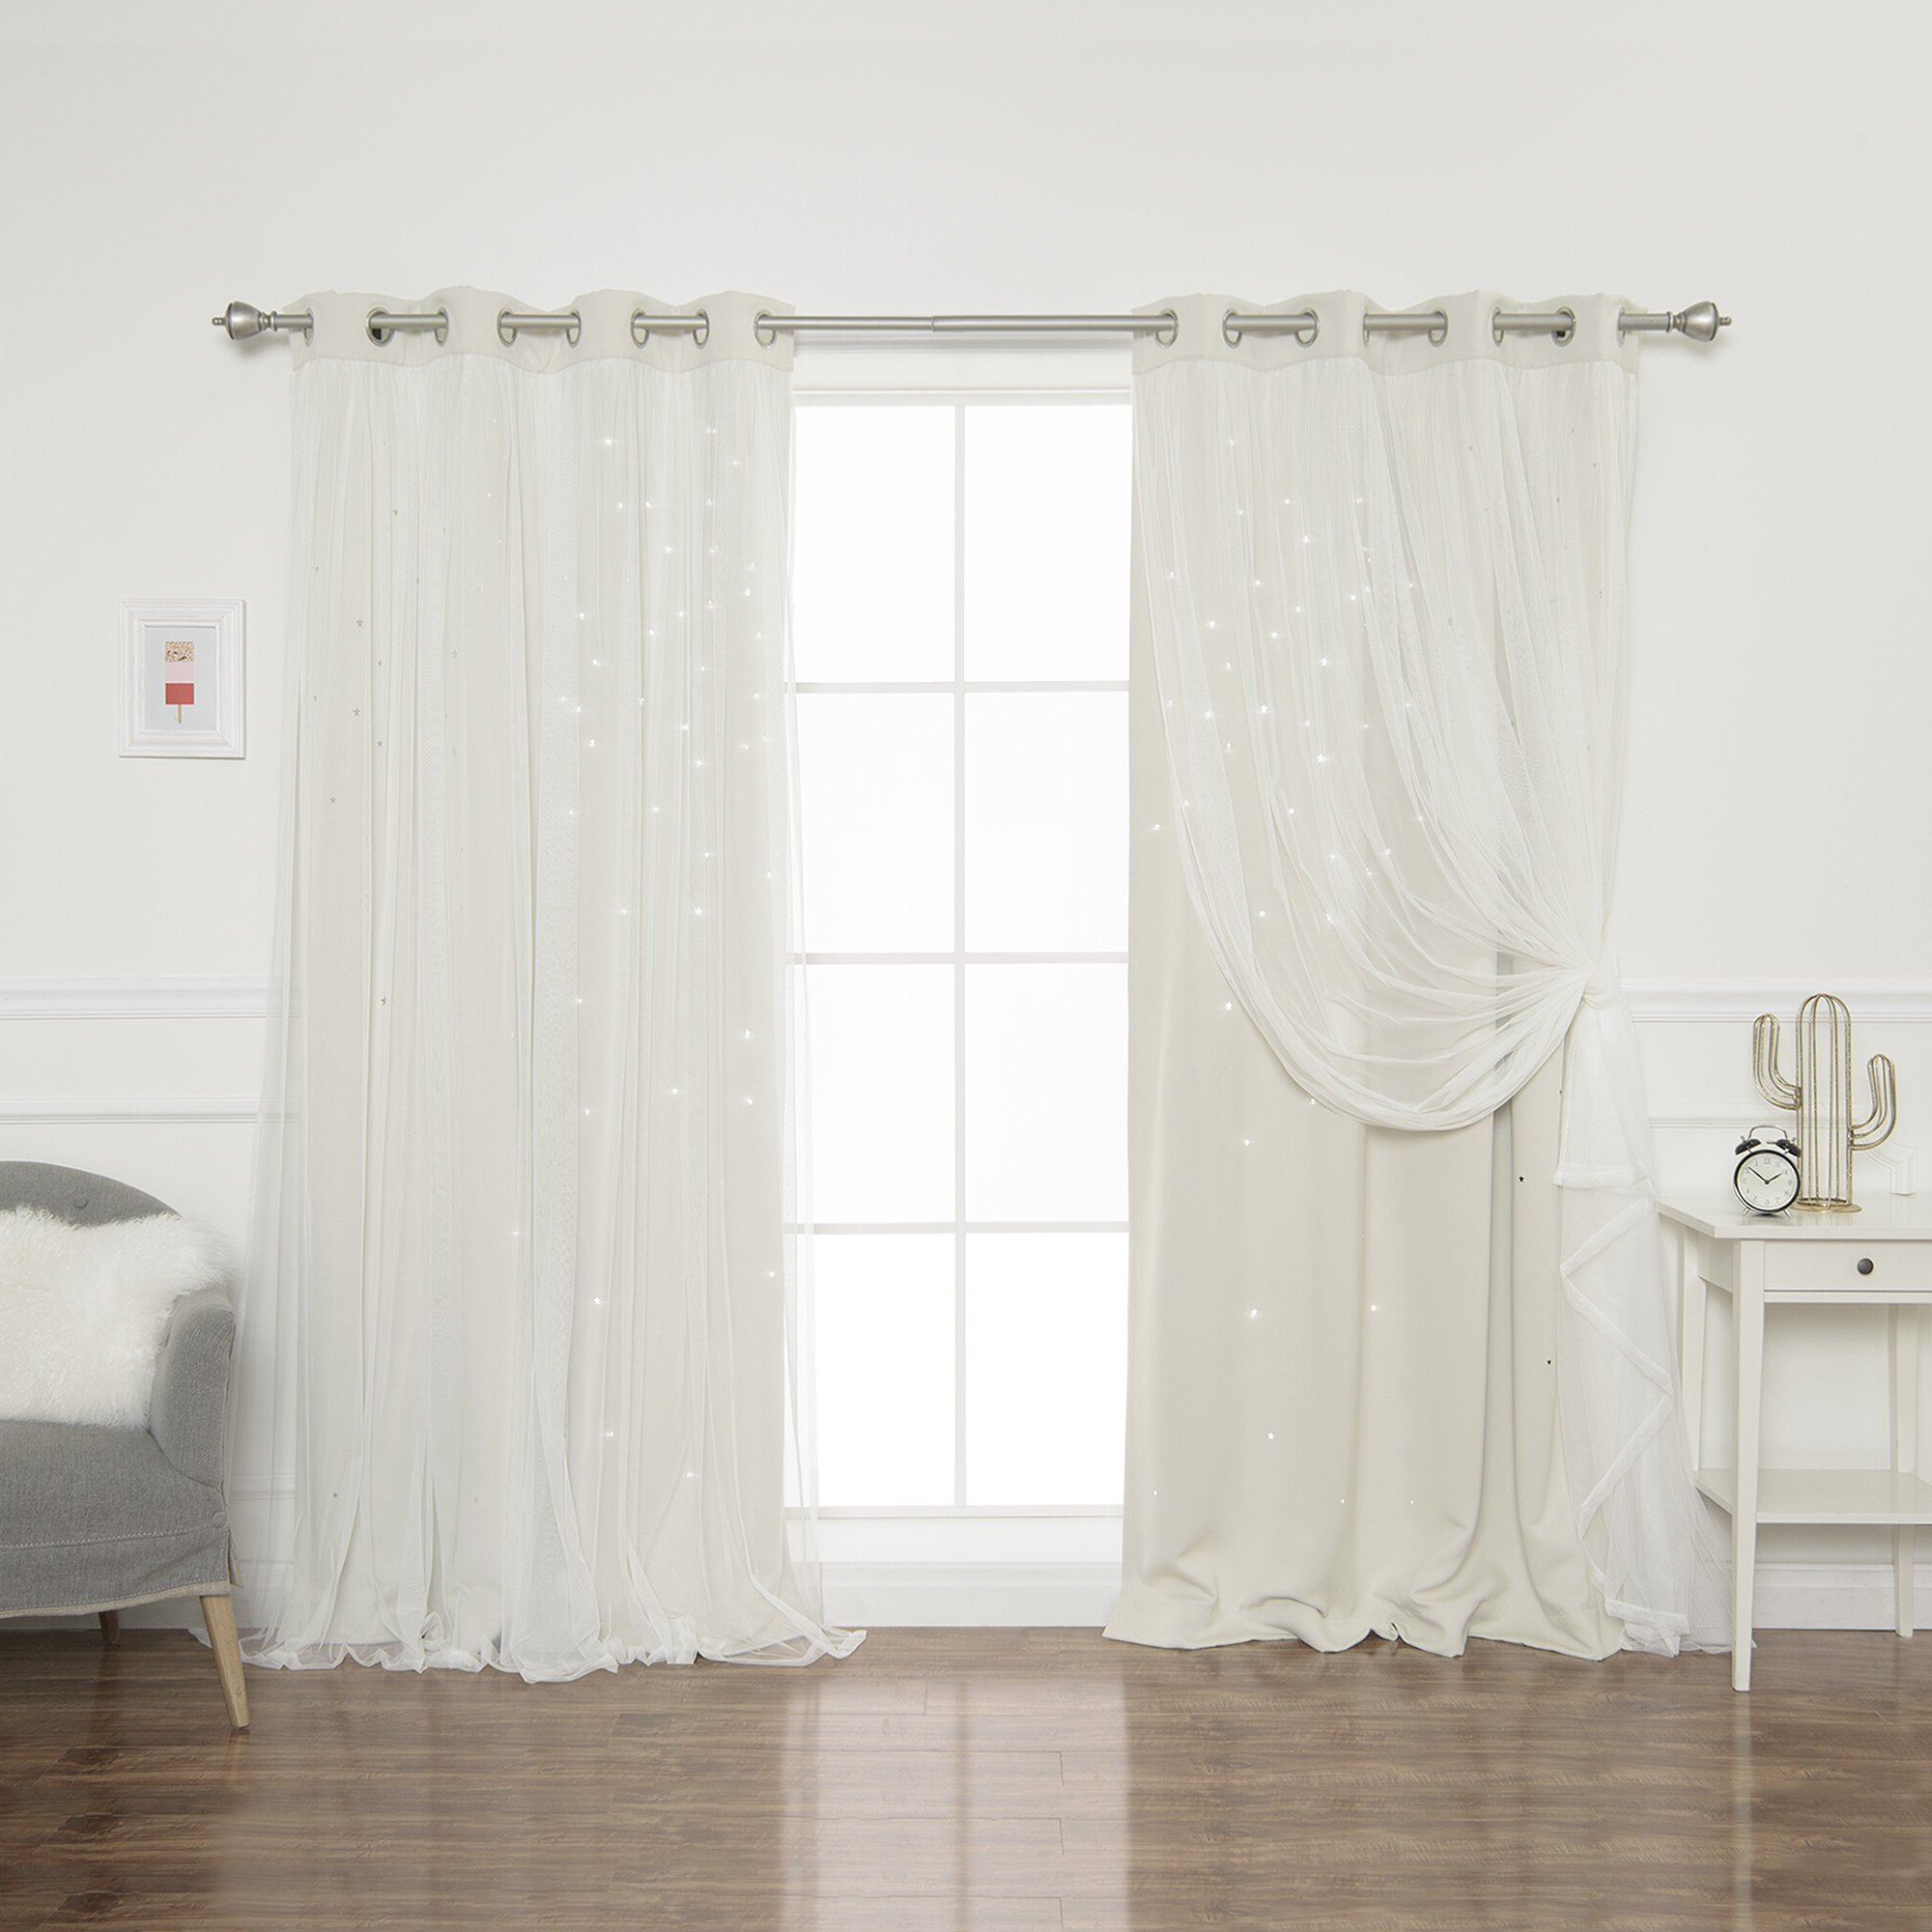 Tulle Sheer With Attached Valance And Blackout 4 Piece Curtain Panel Pairs Within Favorite Efird Tulle Overlay Star Cut Out Blackout Thermal Grommet Curtain Panel (View 20 of 20)